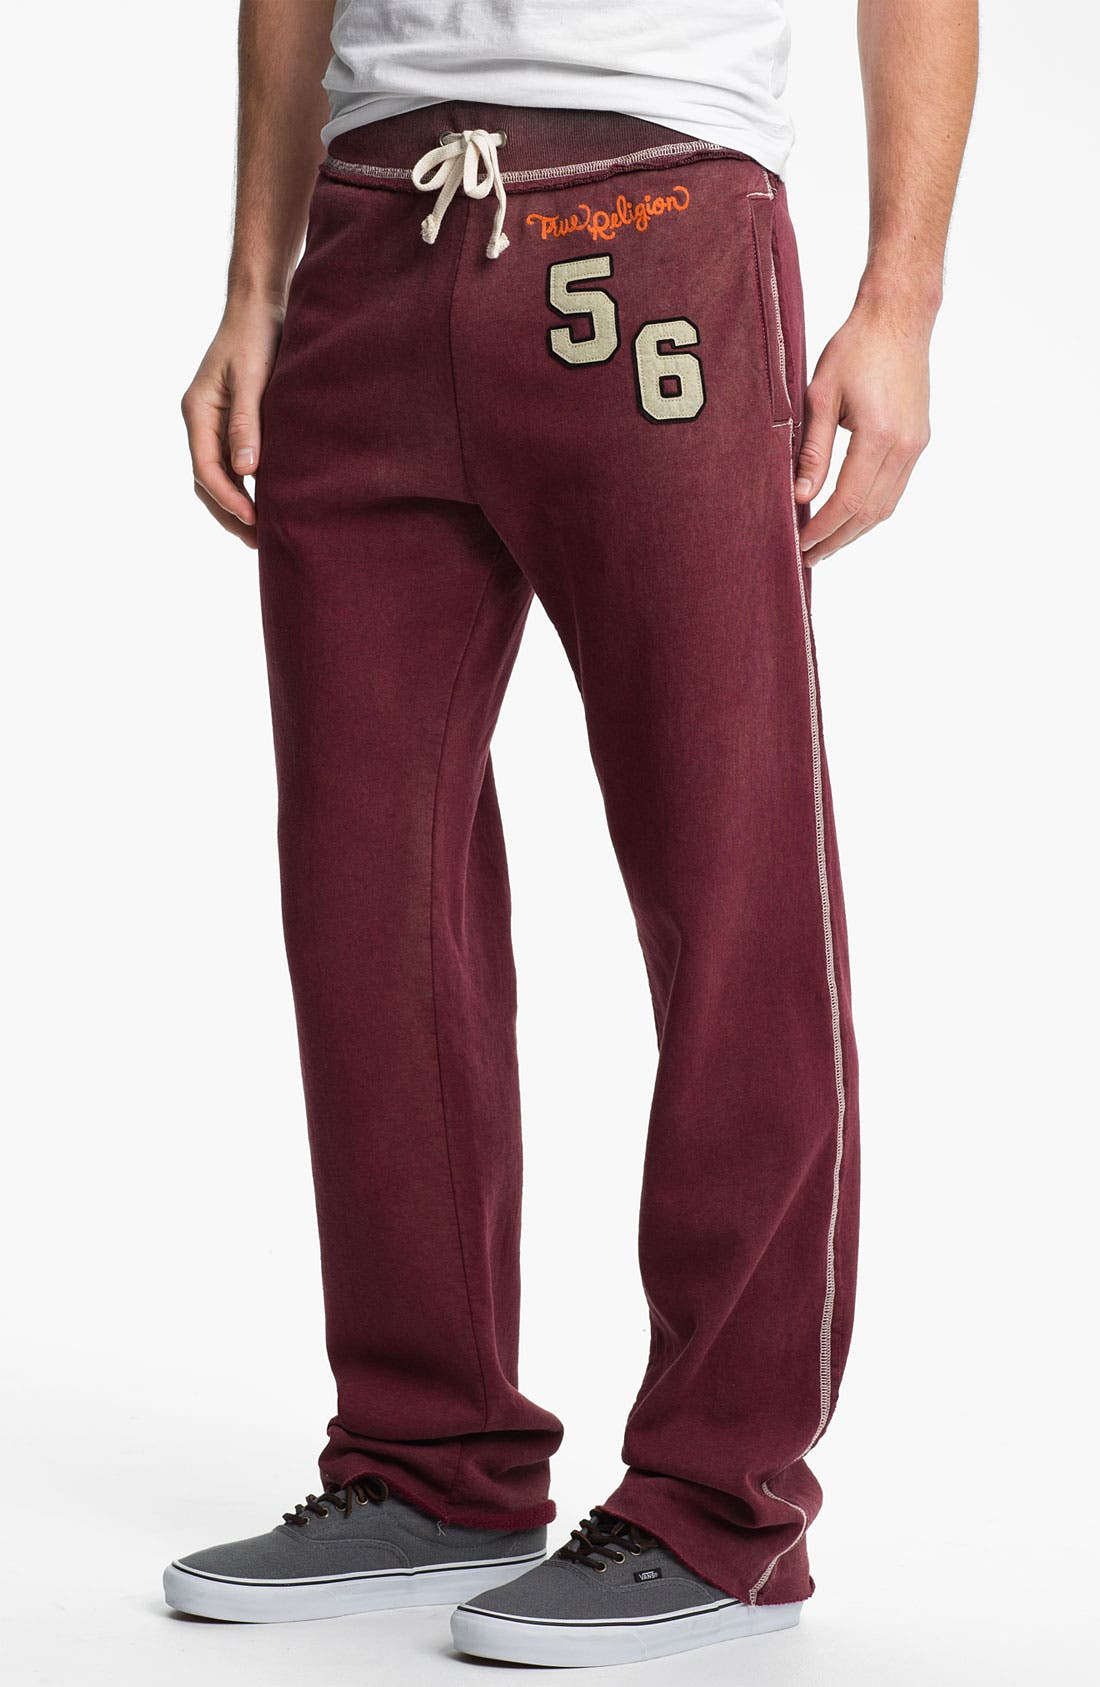 Main Image - True Religion Brand Jeans 'Rockwood Tiger' Athletic Pants (Online Exclusive)